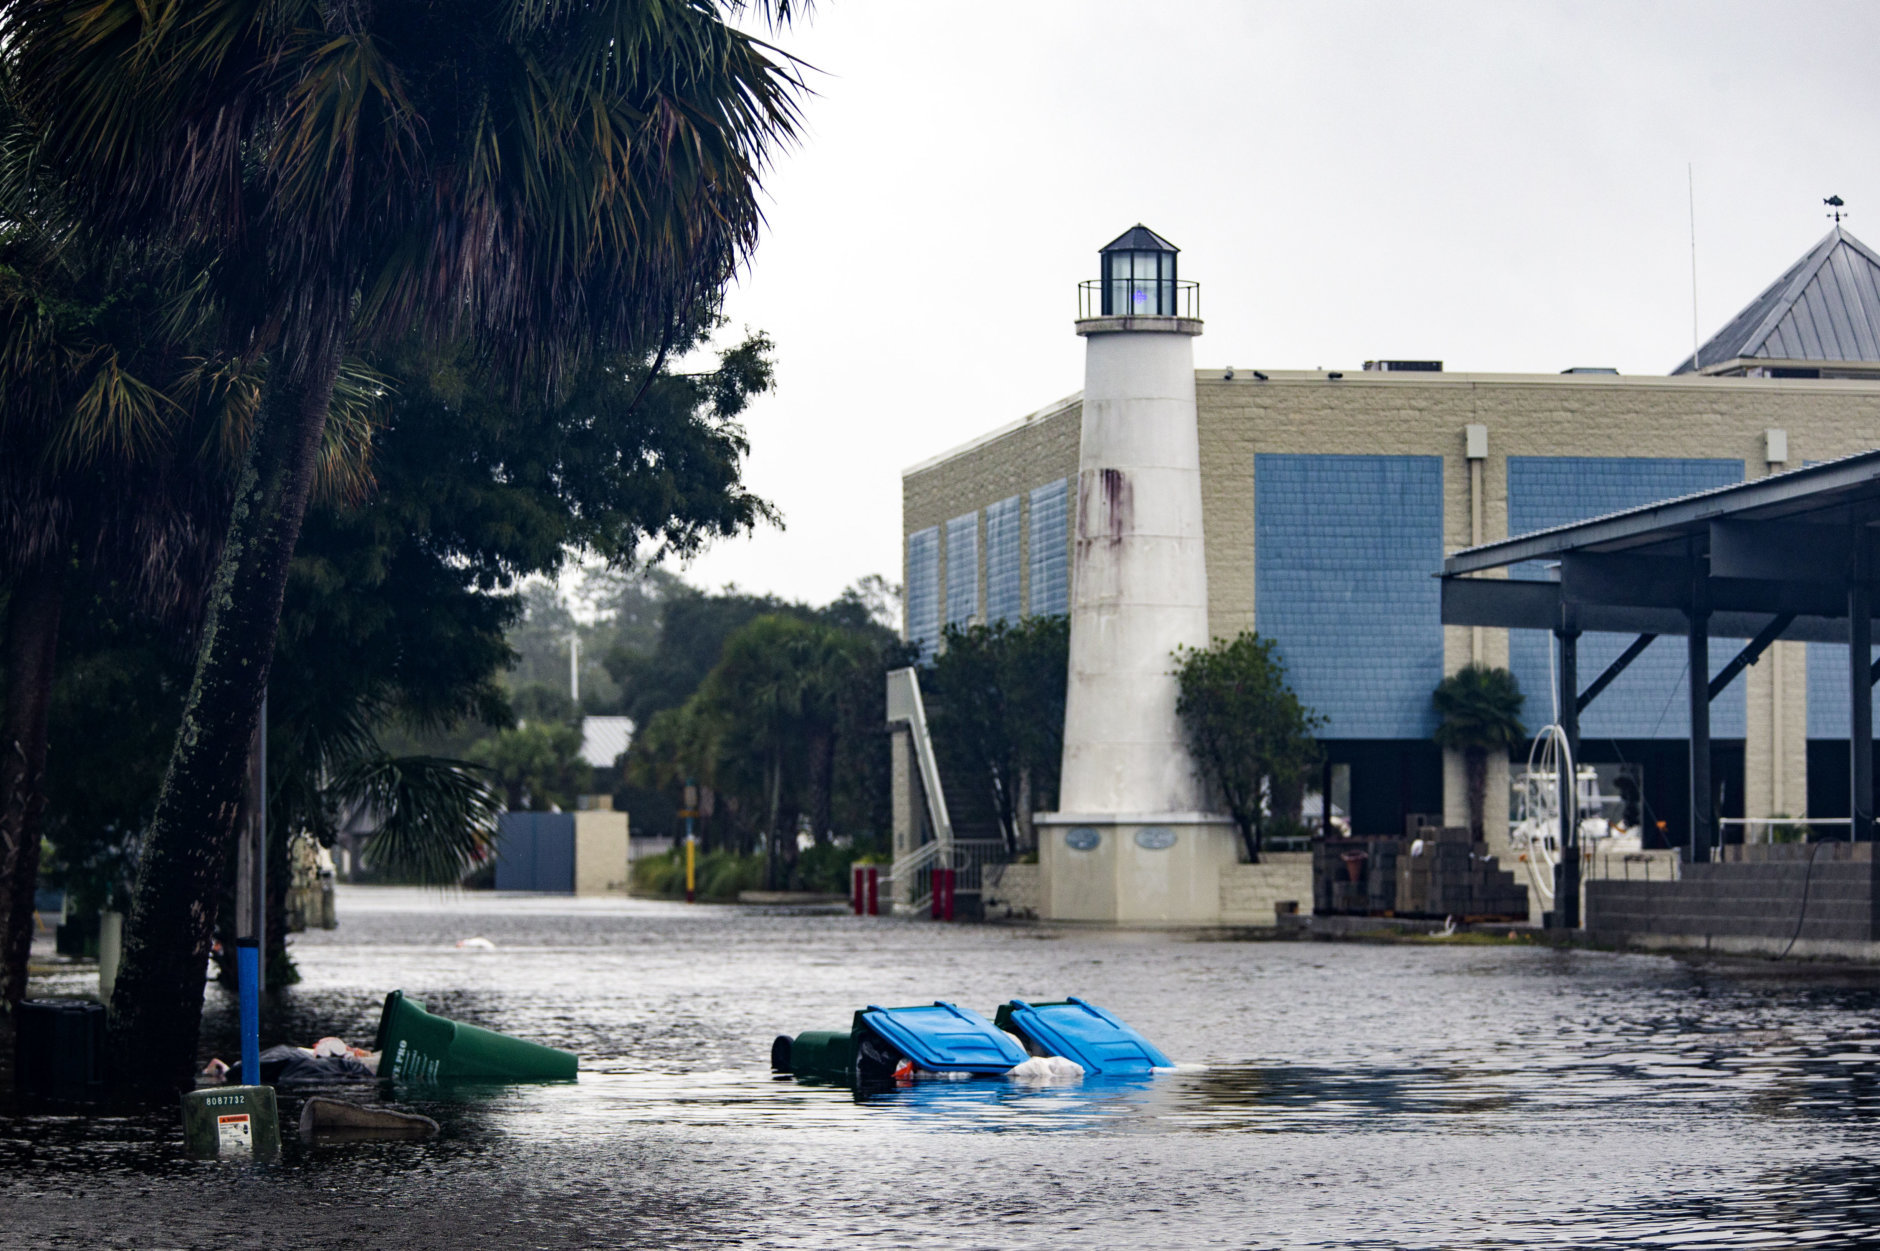 SAINT MARKS, FL - OCTOBER 10: Shields Marina starts taking water in the town of Saint Marks as Hurricane Michael pushes the storm surge up the Wakulla and Saint Marks Rivers which come together here on October 10, 2018 in Saint Marks, Florida.  The hurricane is forecast to hit the Florida Panhandle at a possible category 4 storm.  (Photo by Mark Wallheiser/Getty Images)